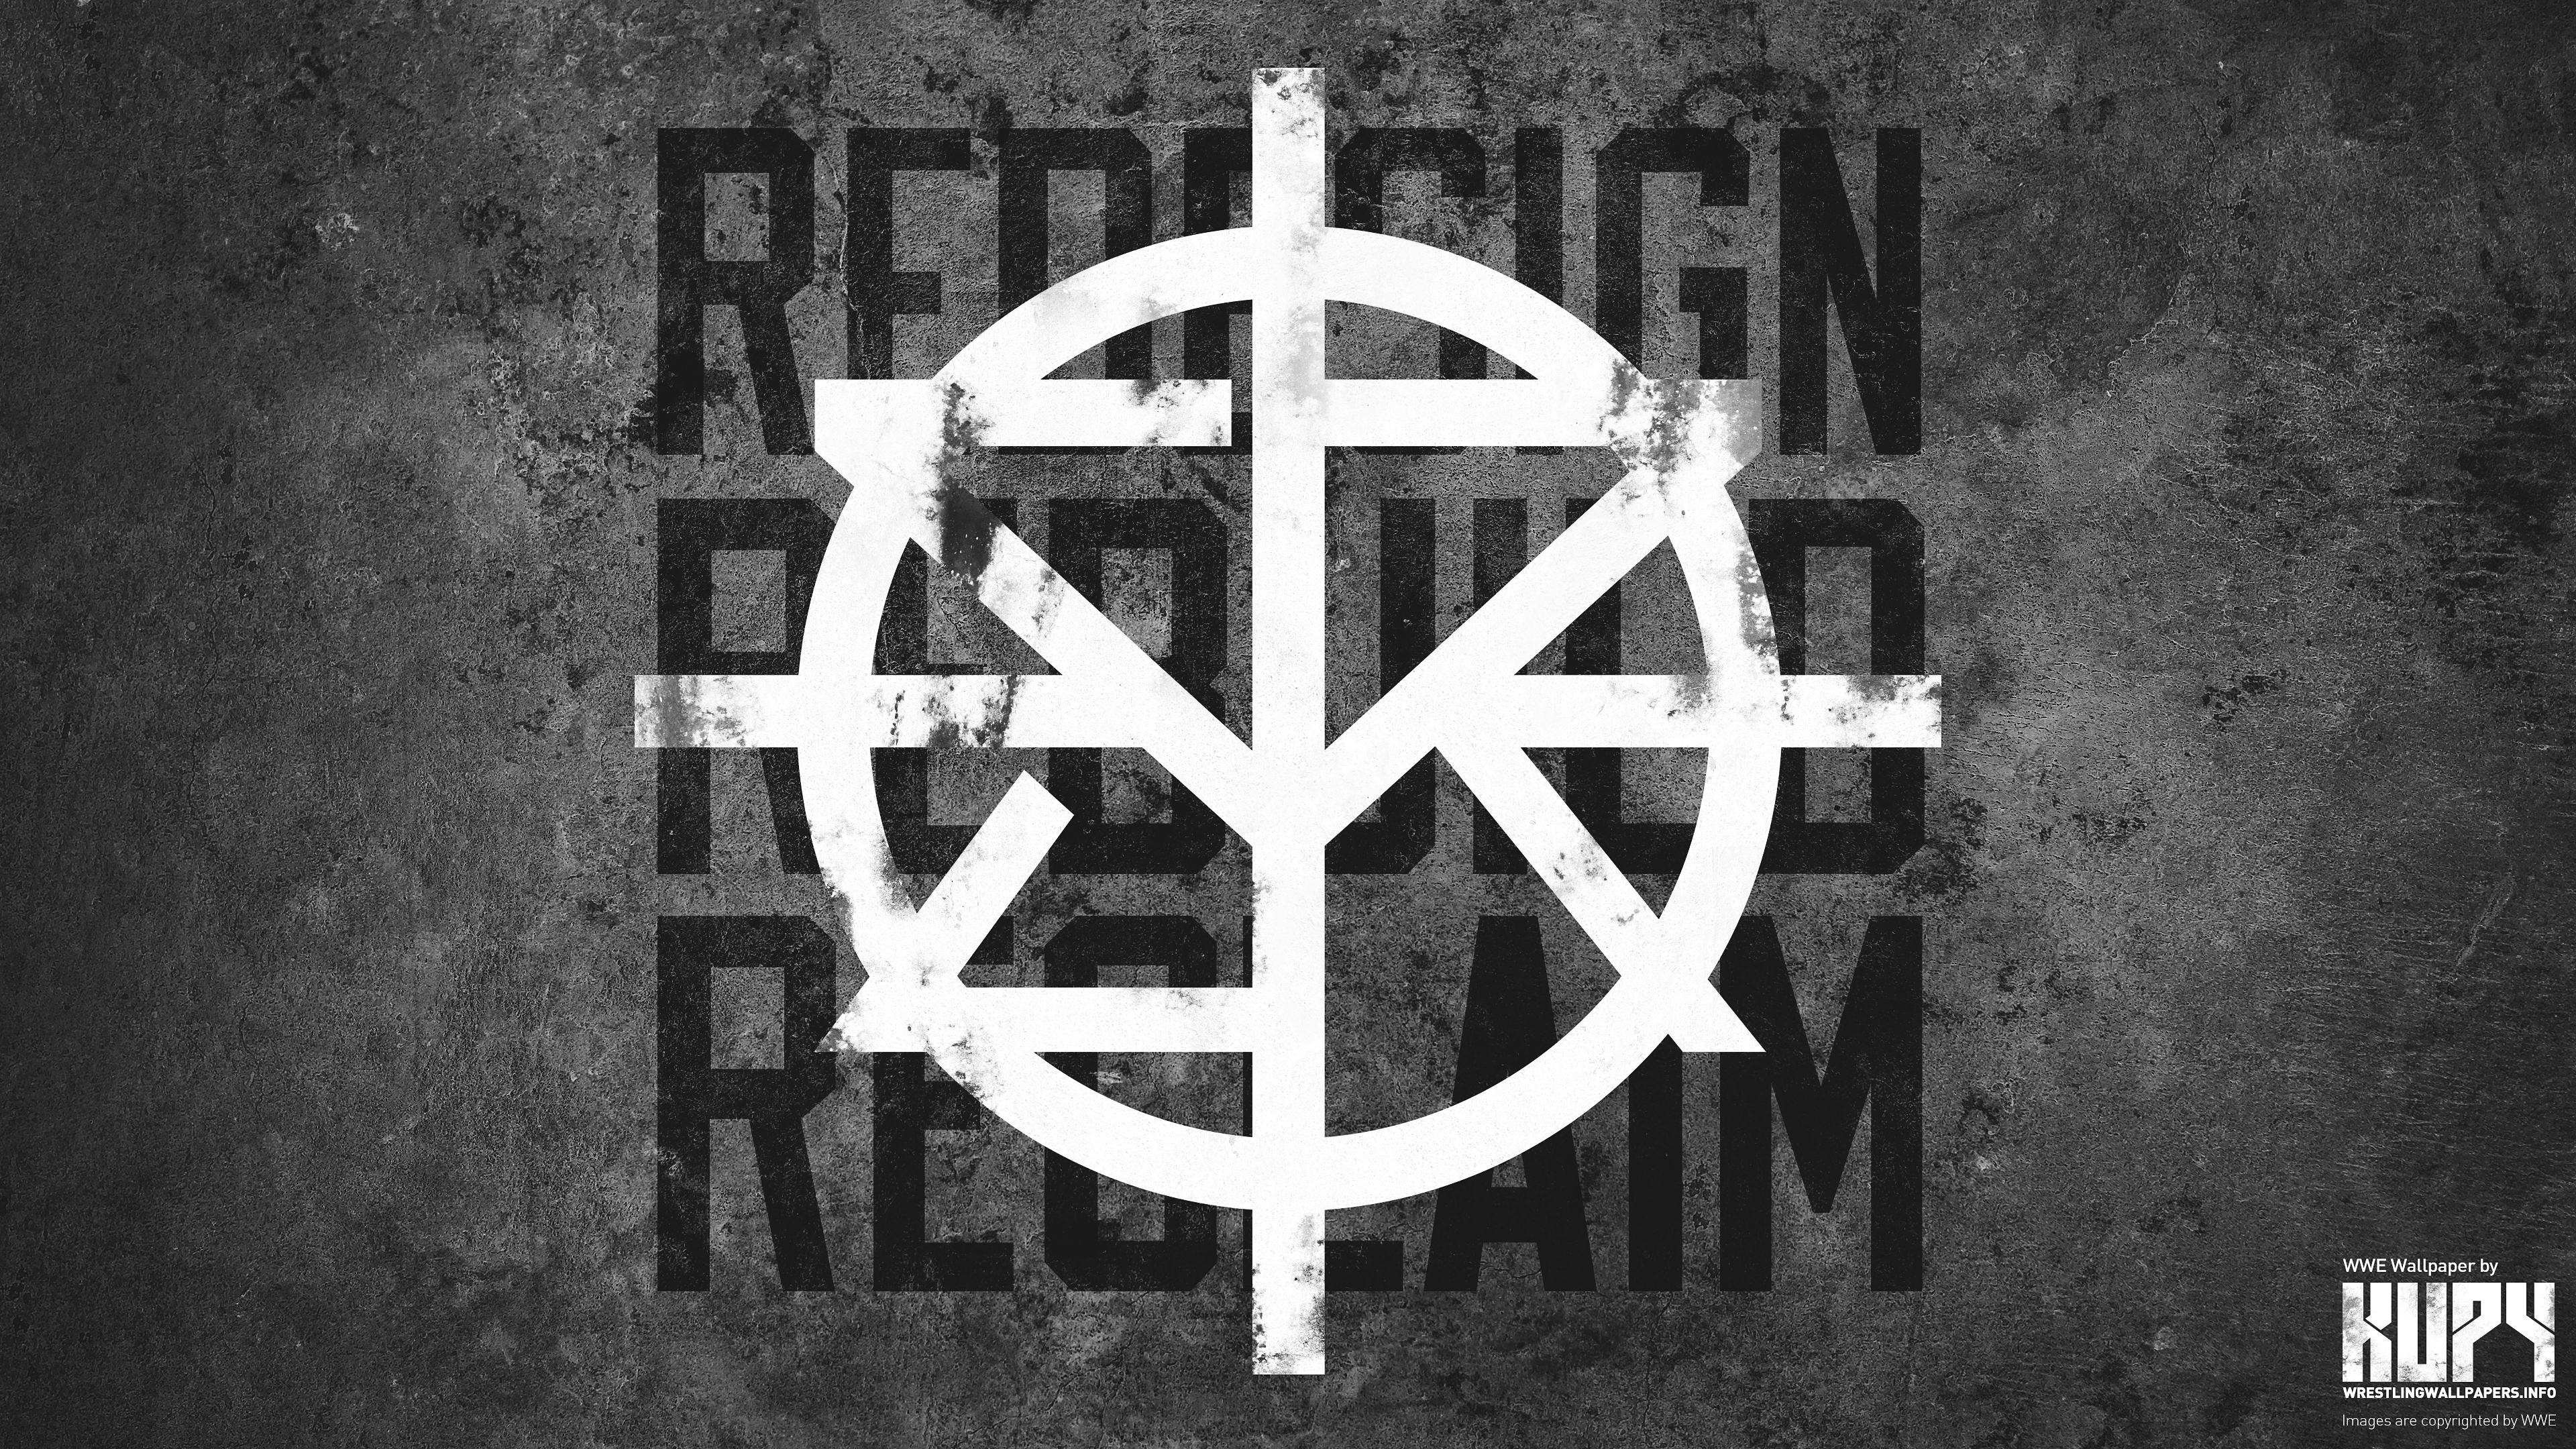 new seth rollins redesign rebuild reclaim wallpaper! - kupy